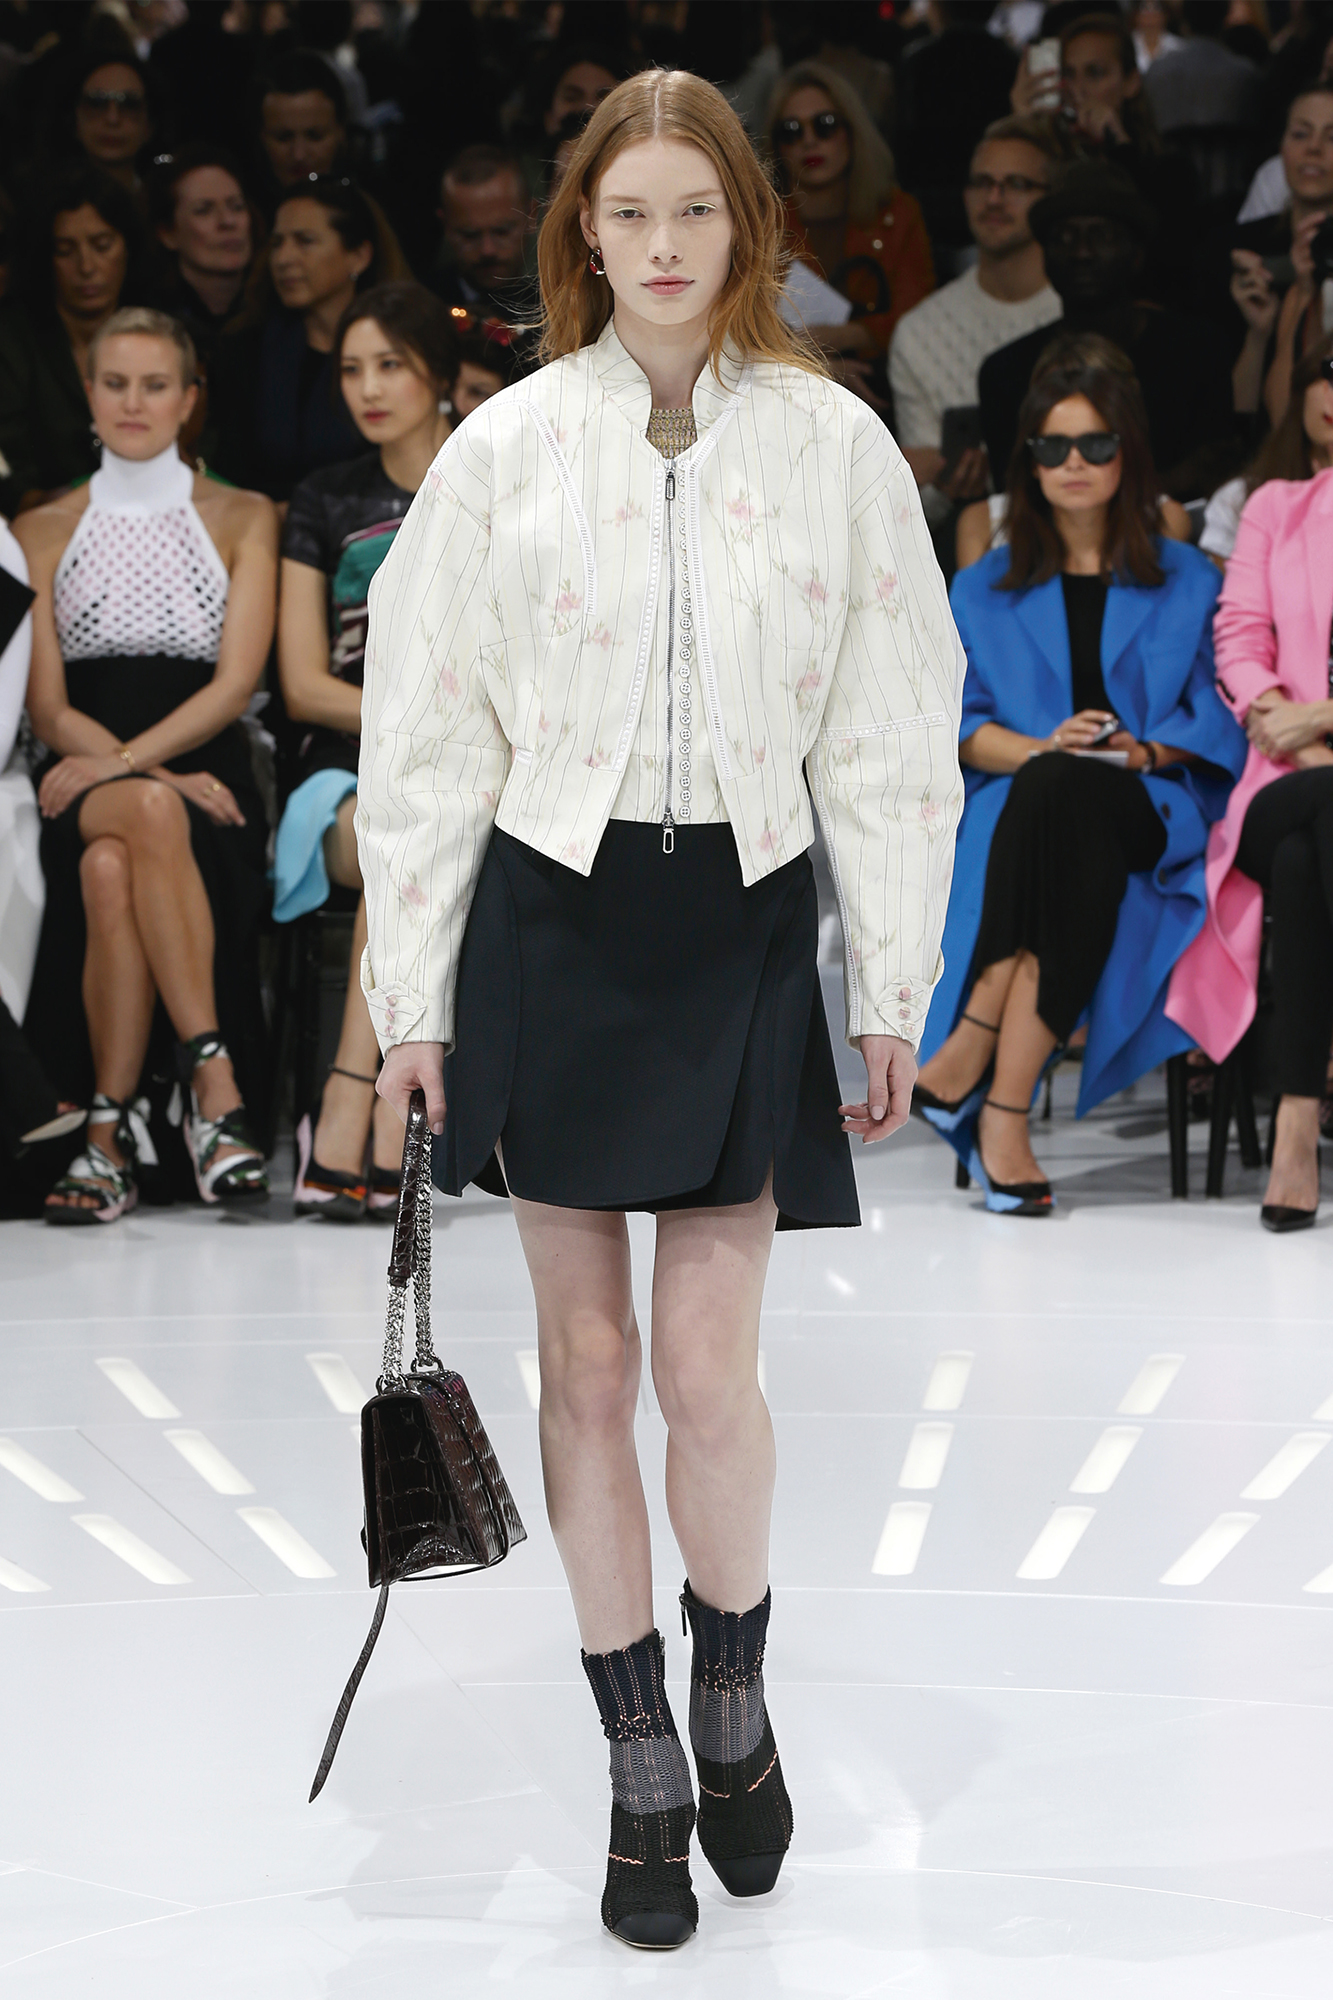 New Western Fashion Christian Dior Ready To Wear Dresses Spring Summer Collection 2015 (22)